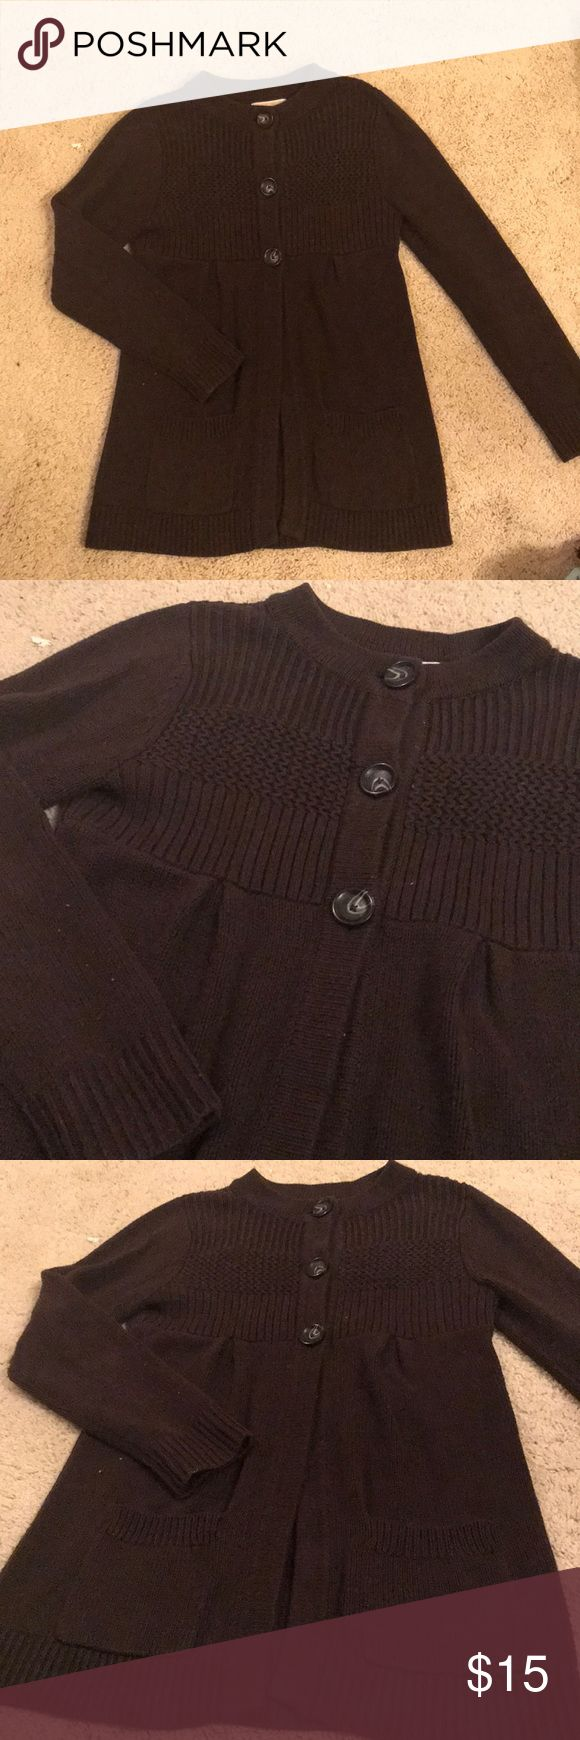 Michael Kors Chunky Knit Sweater Chocolate Brown color - size medium. Long button up Chunky Knit Michael Kors Sweater with front pockets. Perfect with jeans and brown boots! 60% cotton/40% acrylic material. Michael Kors Sweaters Cardigans